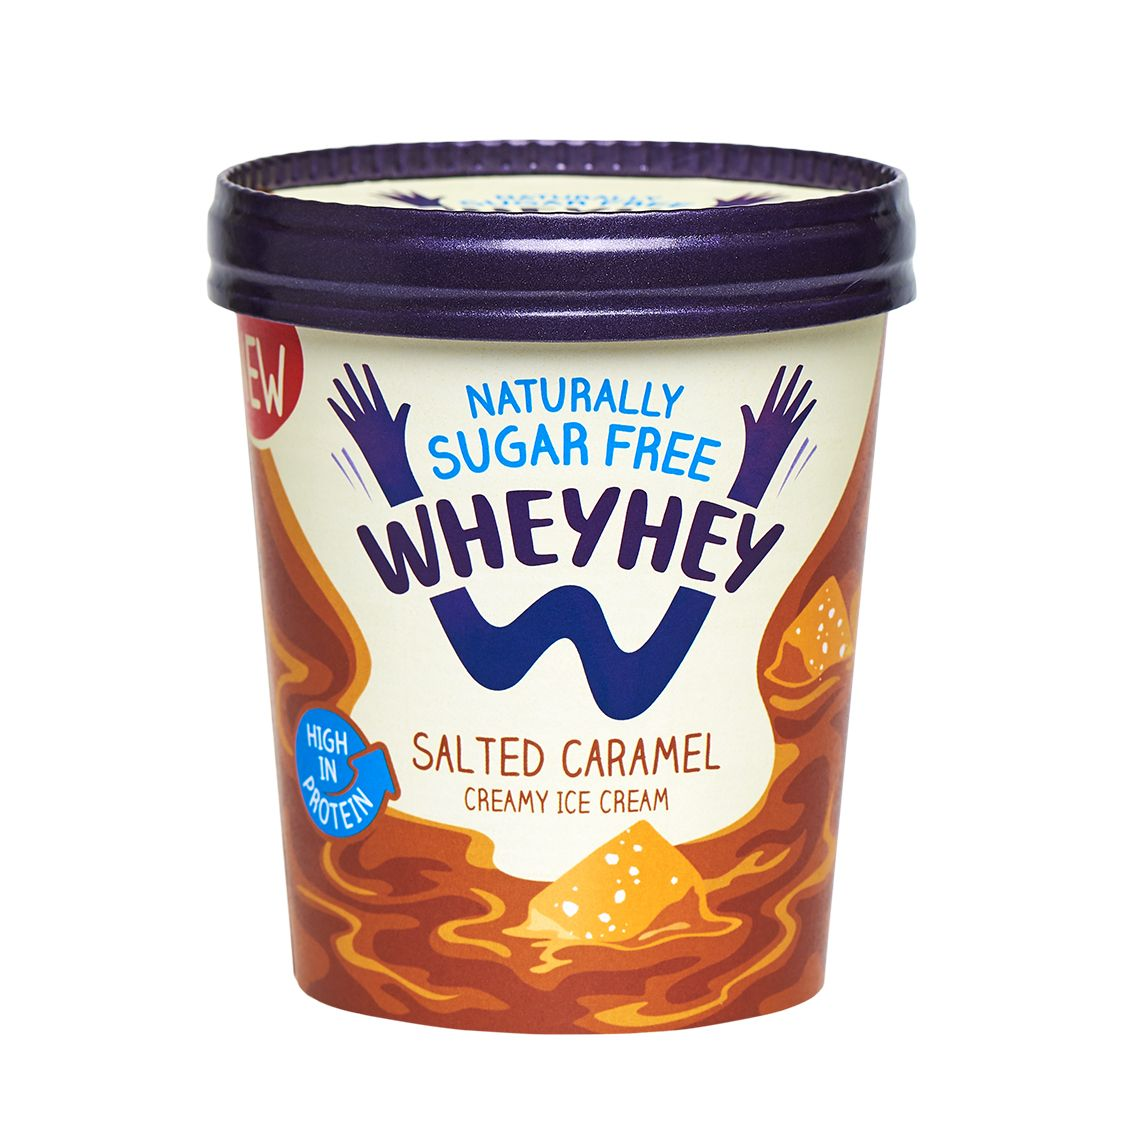 New Health Food Brands UK